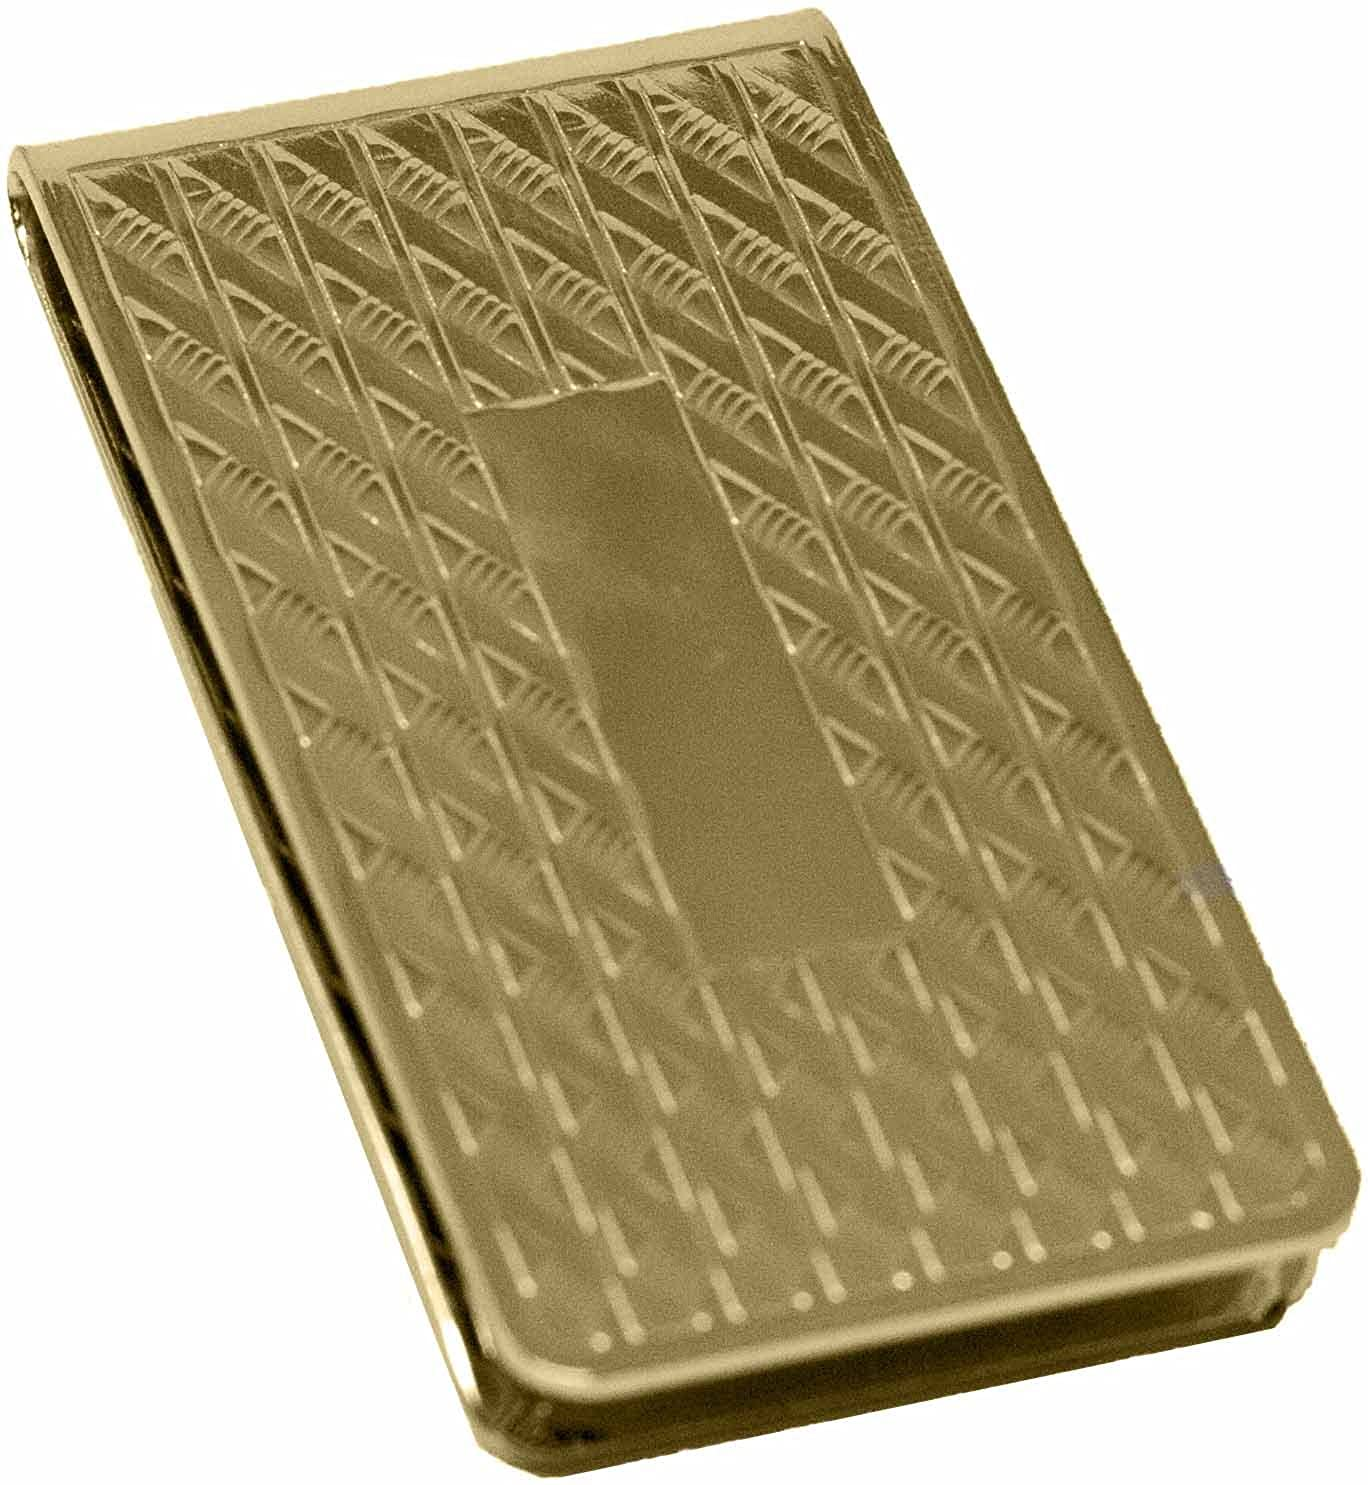 gold Honeycomb Pattern Stainless Steel Boxed Money Clip